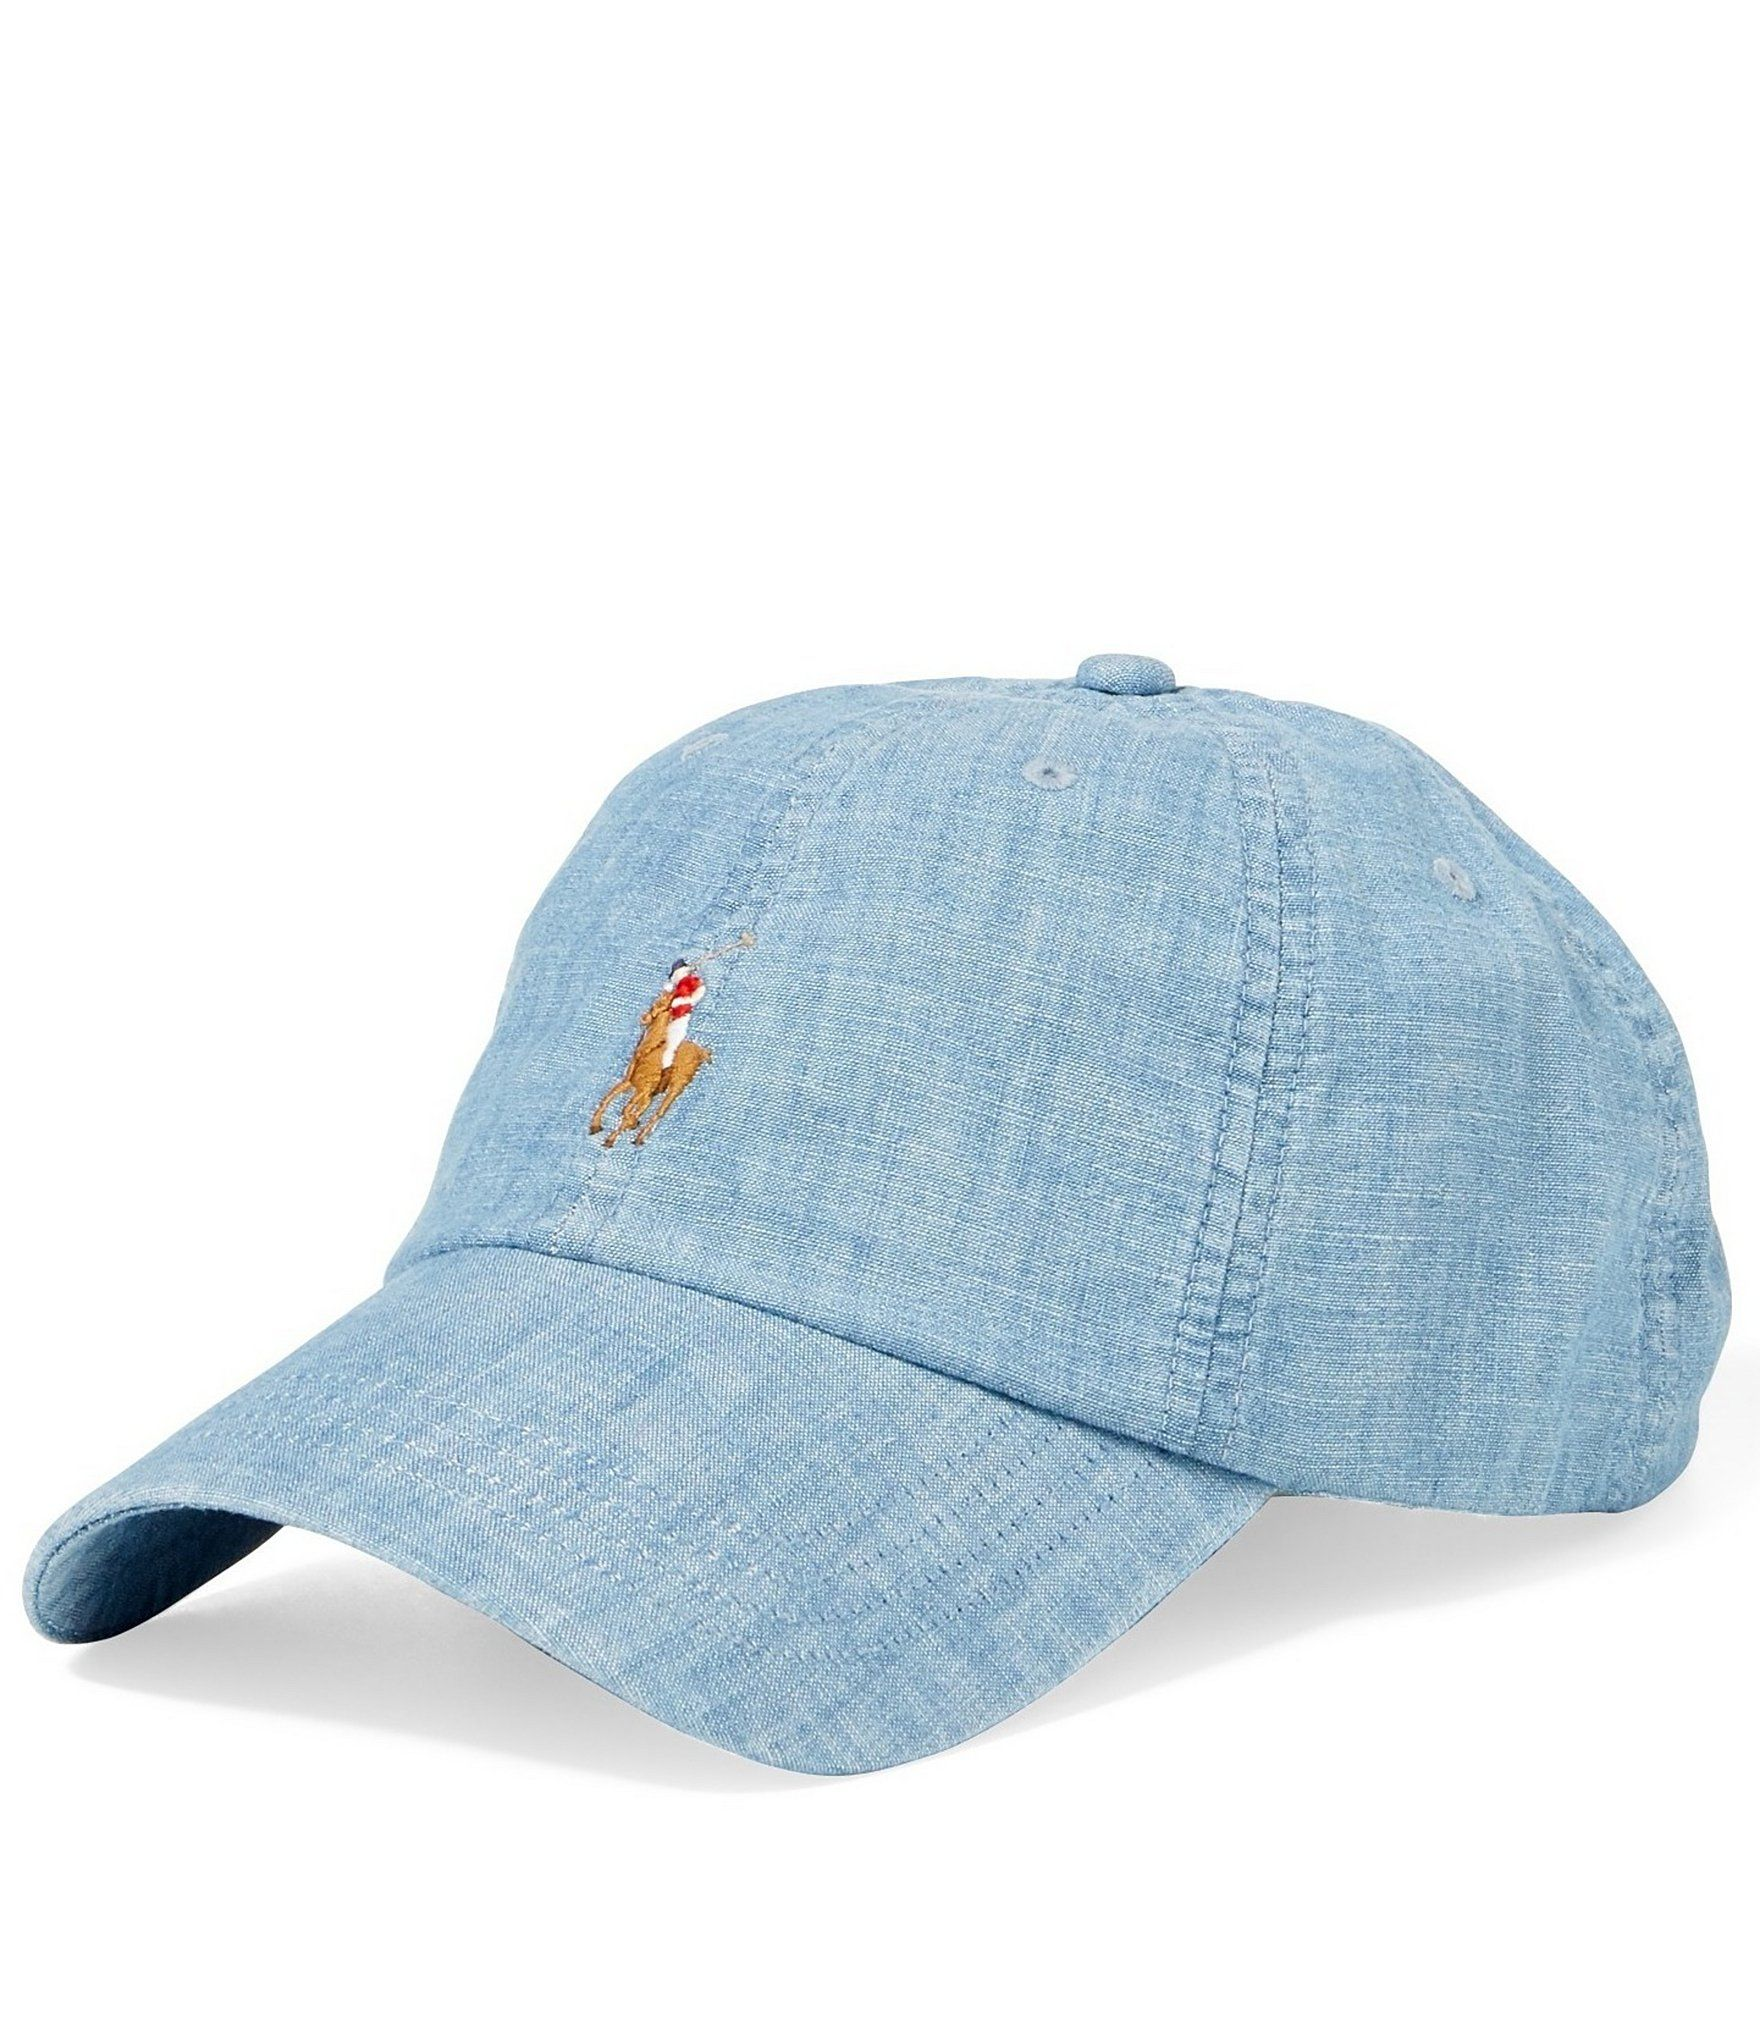 0e7ffea7b Shop for Polo Ralph Lauren Classic Baseball Cap at Dillards.com. Visit  Dillards.com to find clothing